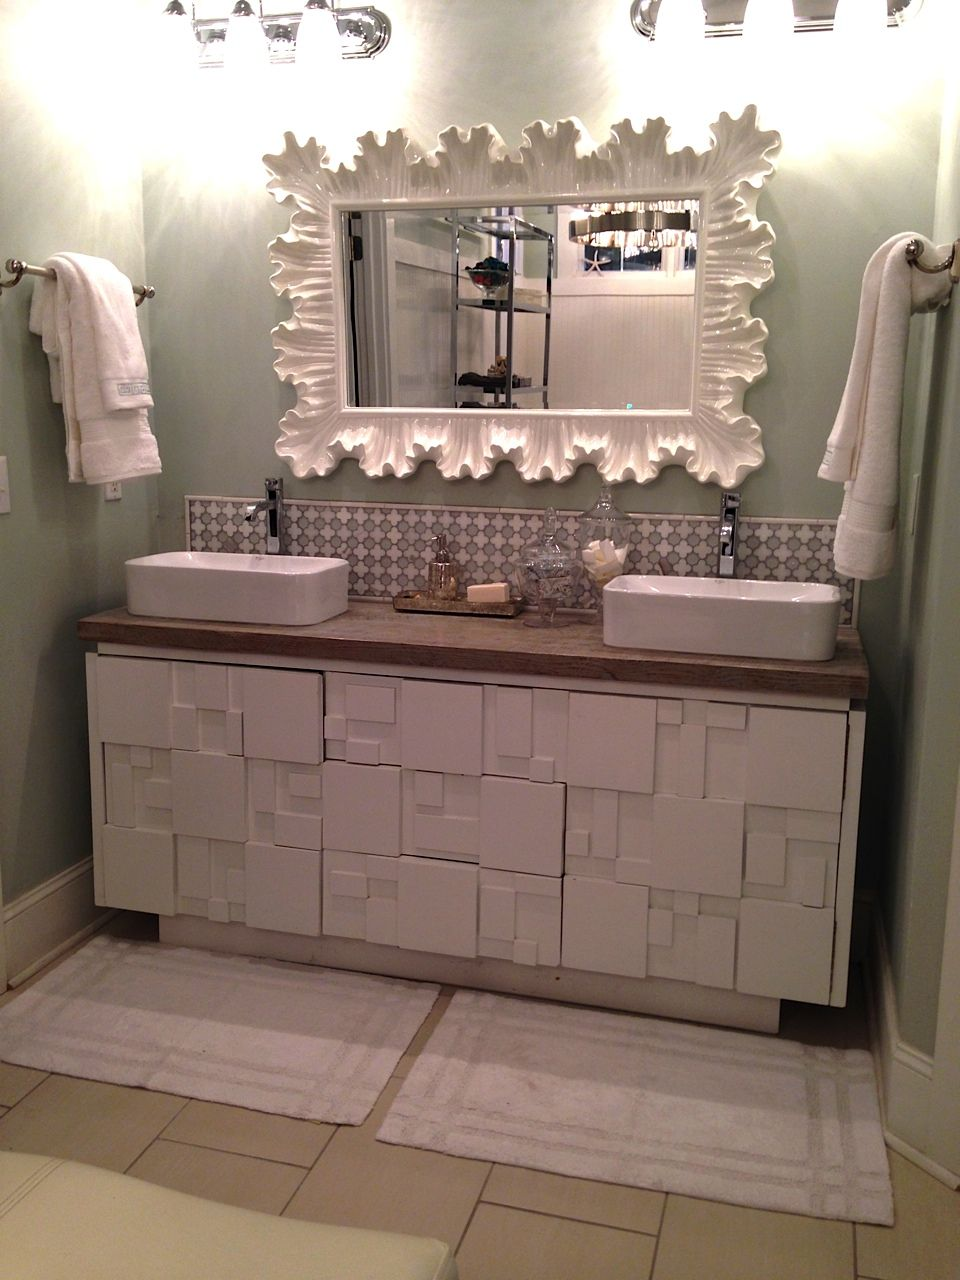 This HomeGoods Mirror Adds A Lot Of Drama To This Master The - Home goods bathroom mirrors for bathroom decor ideas